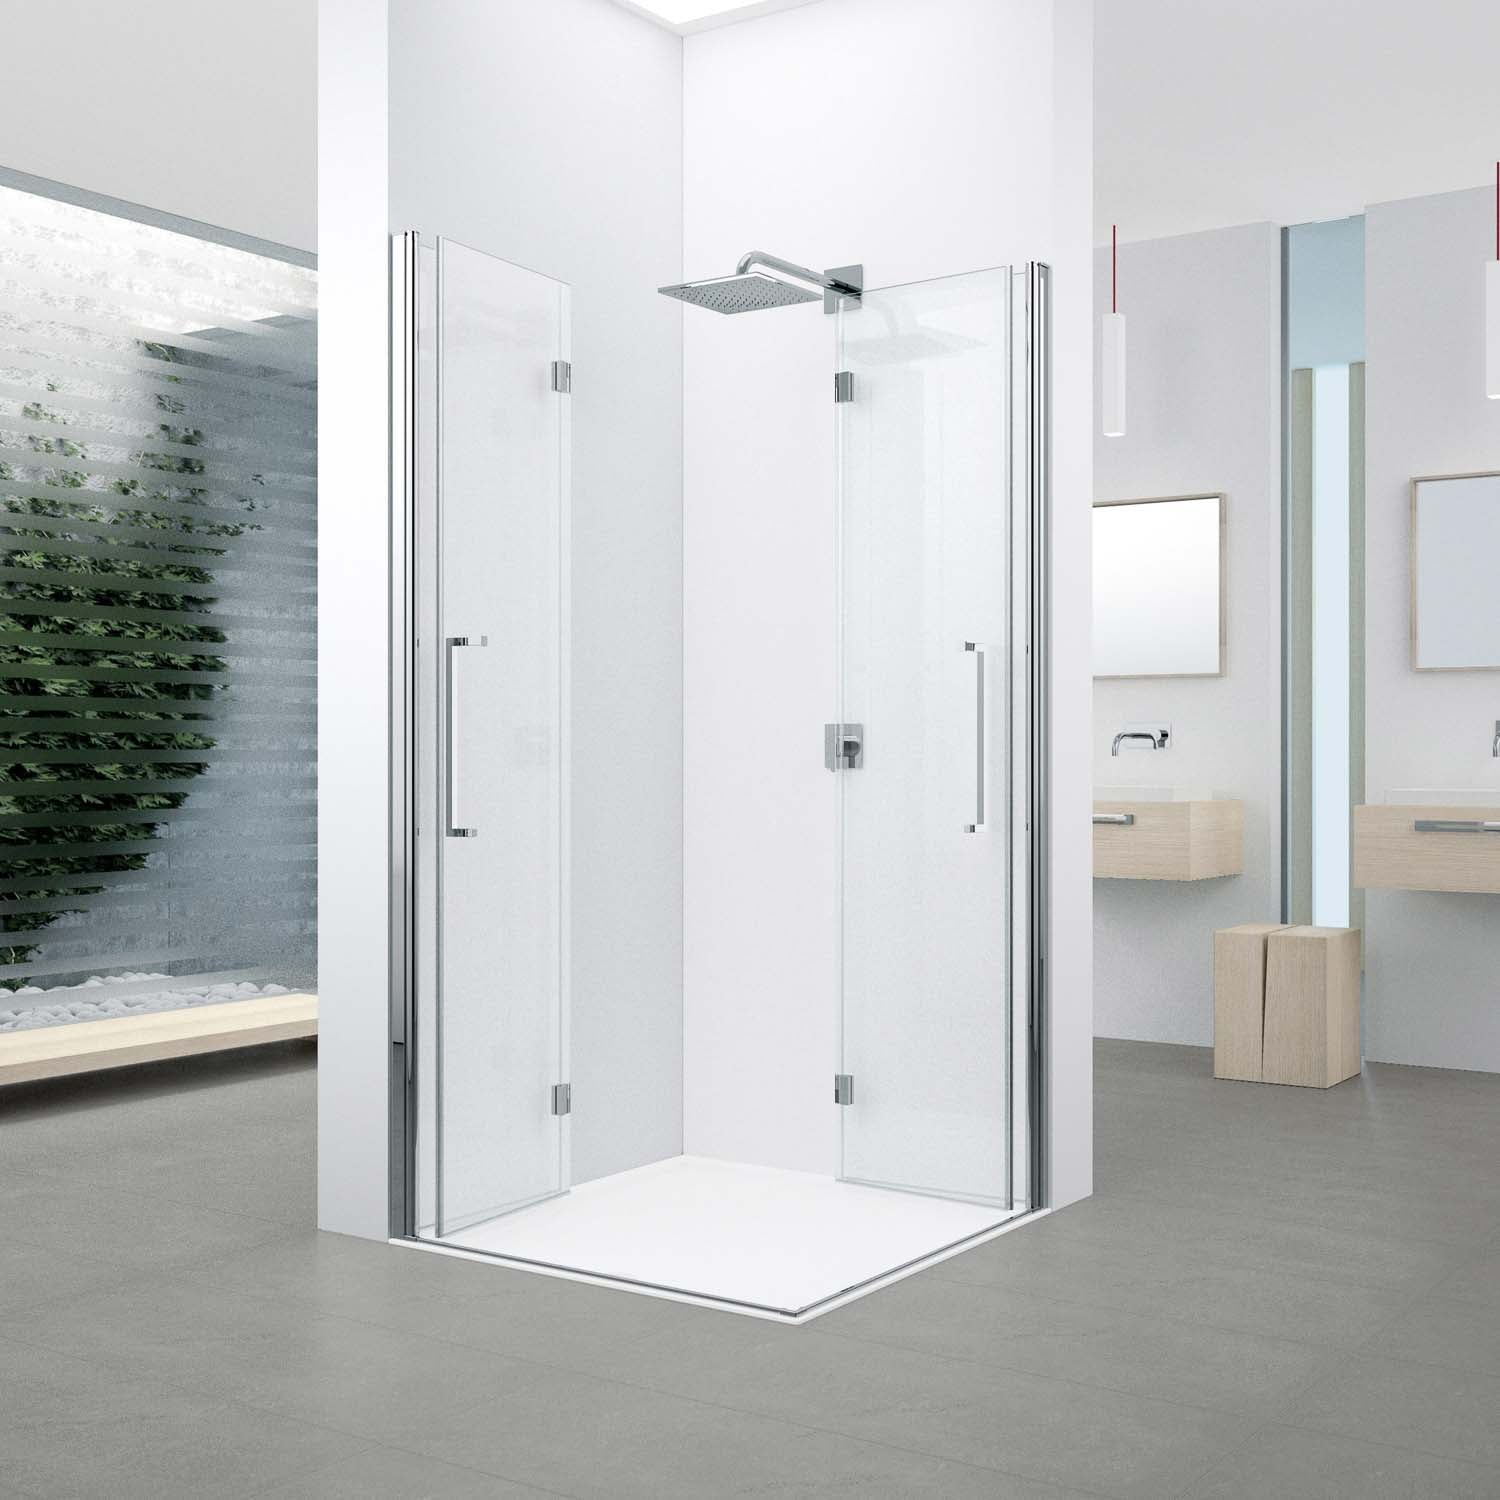 1190-1210mm Bliss Bi-folding Screen Frosted Glass with a chrome finish lifestyle image